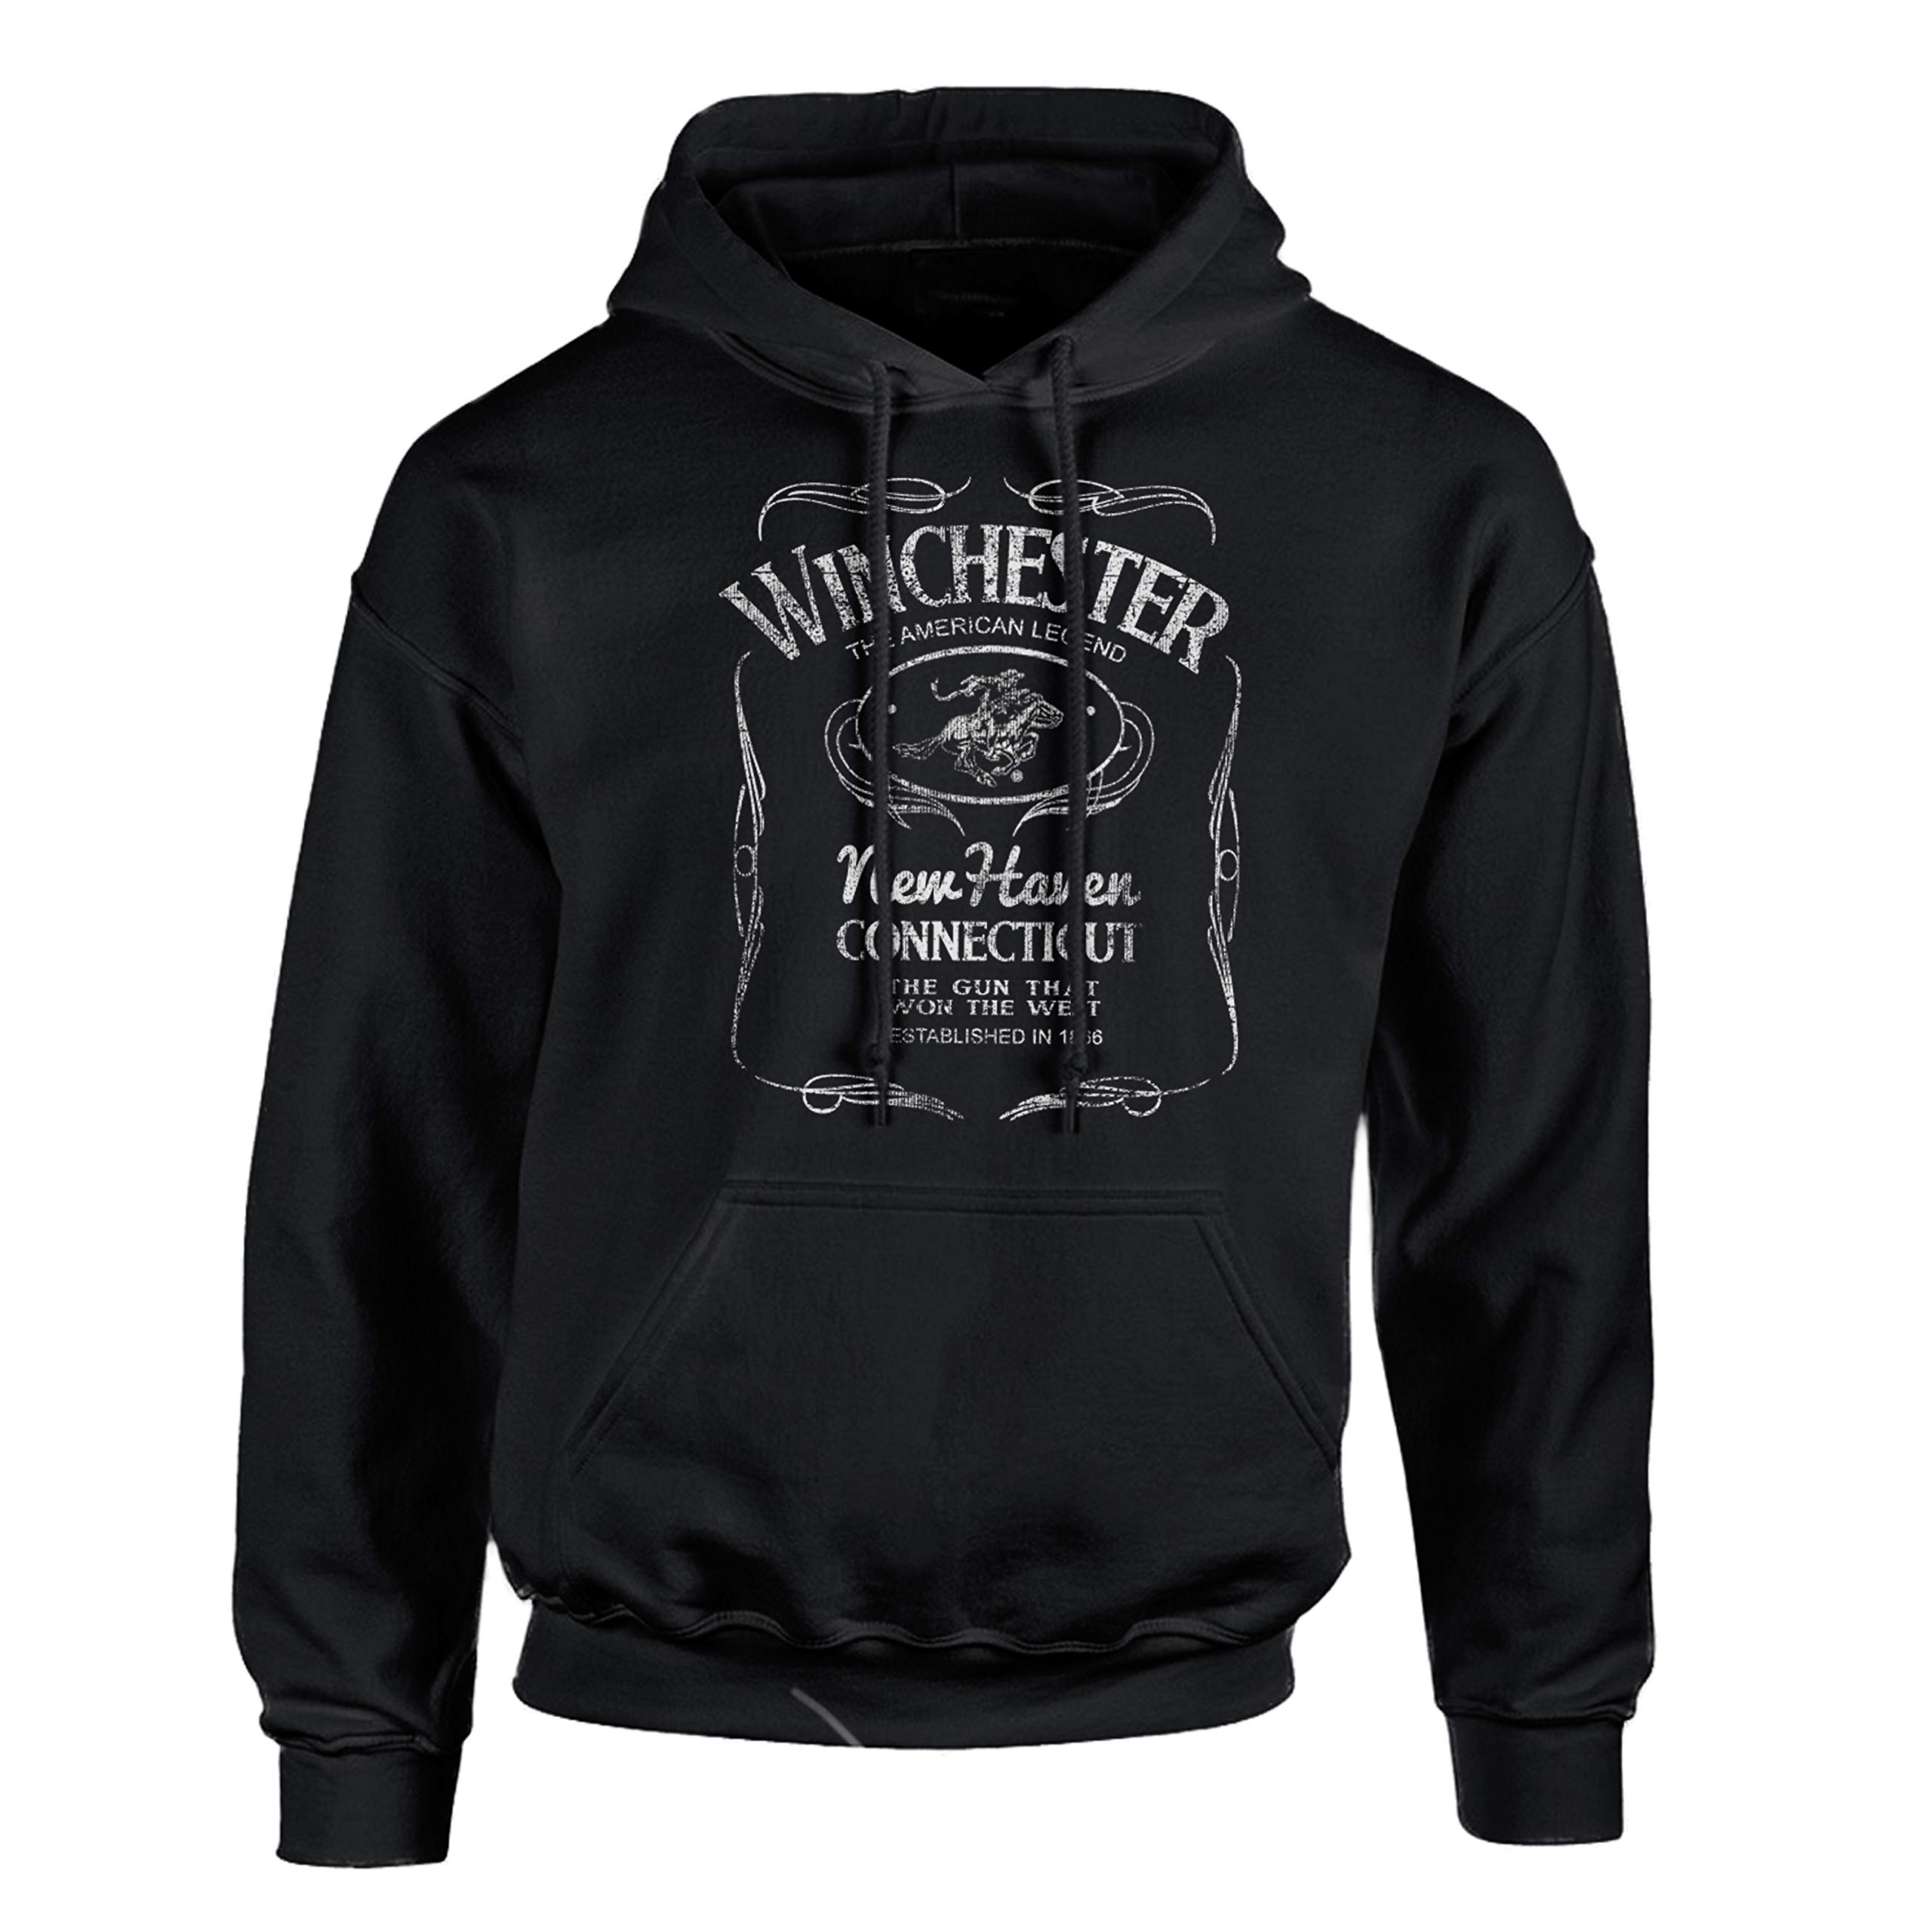 Winchester Western Poster Hoodie Pullover Fleece for Men - Sweatshirt, Gift, Cotton Poly Blend, Ultra Soft